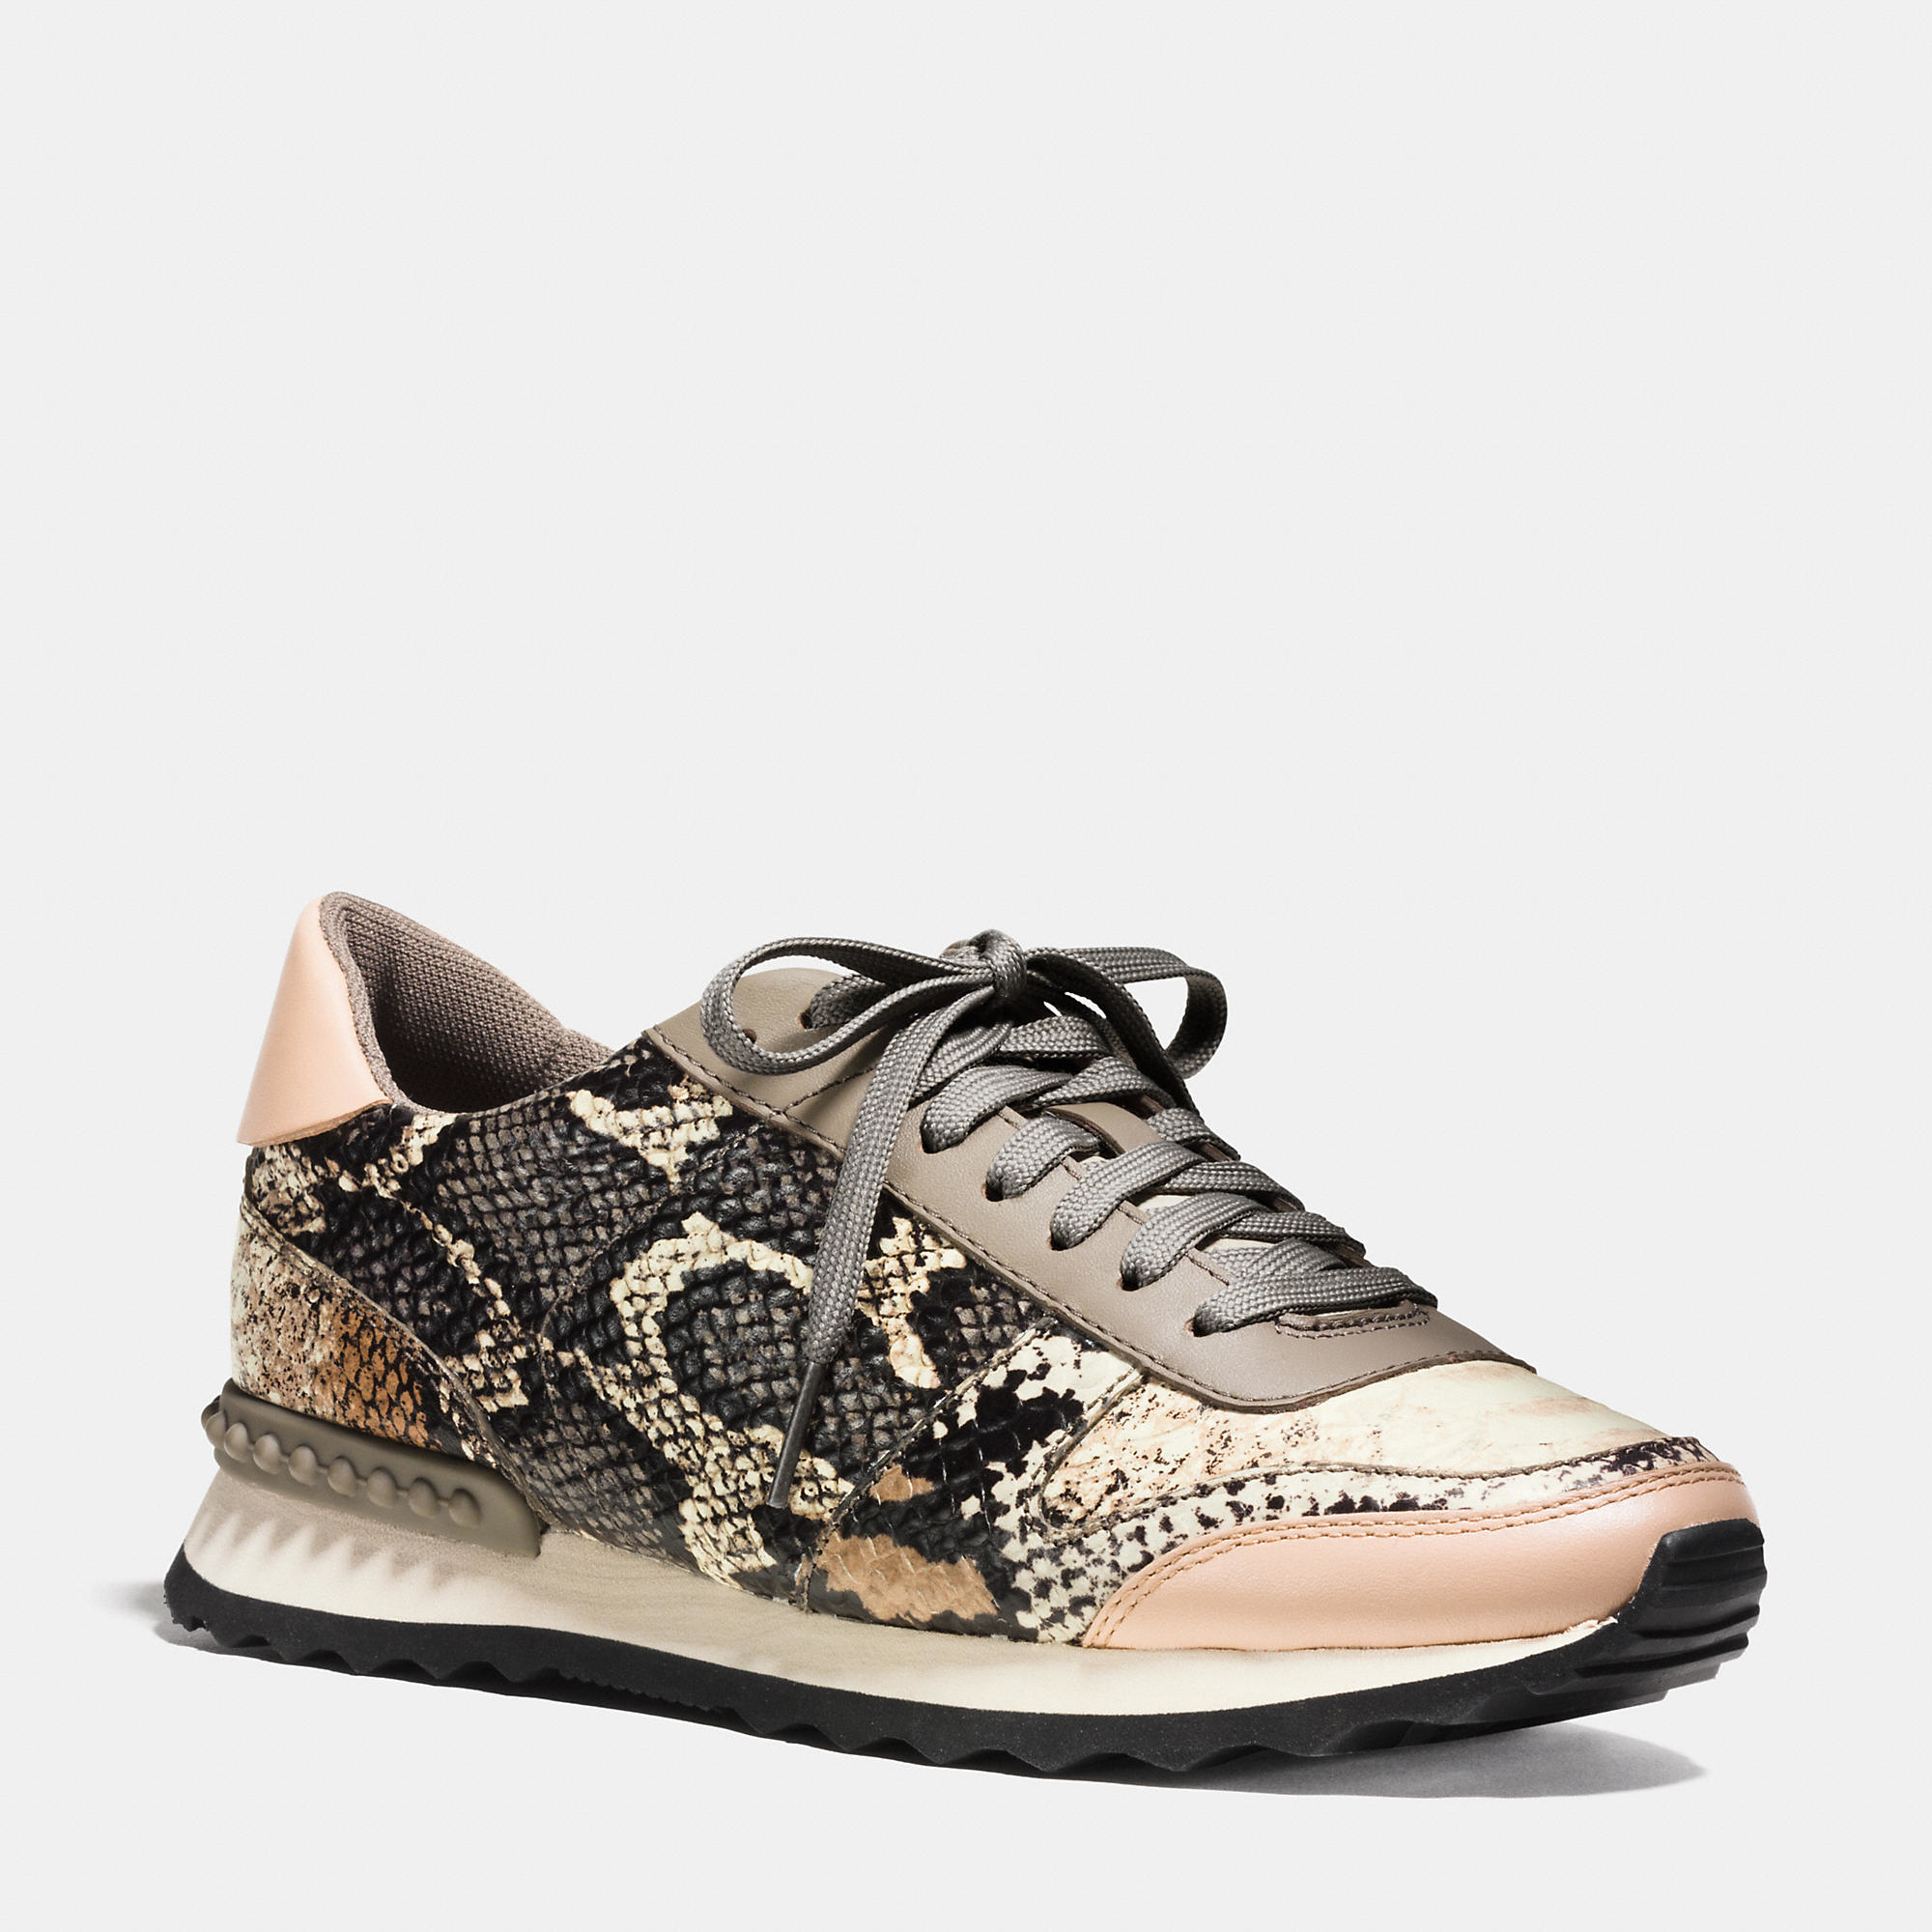 Coach Sneakers For 28 Images Coach C210 Sneakers In